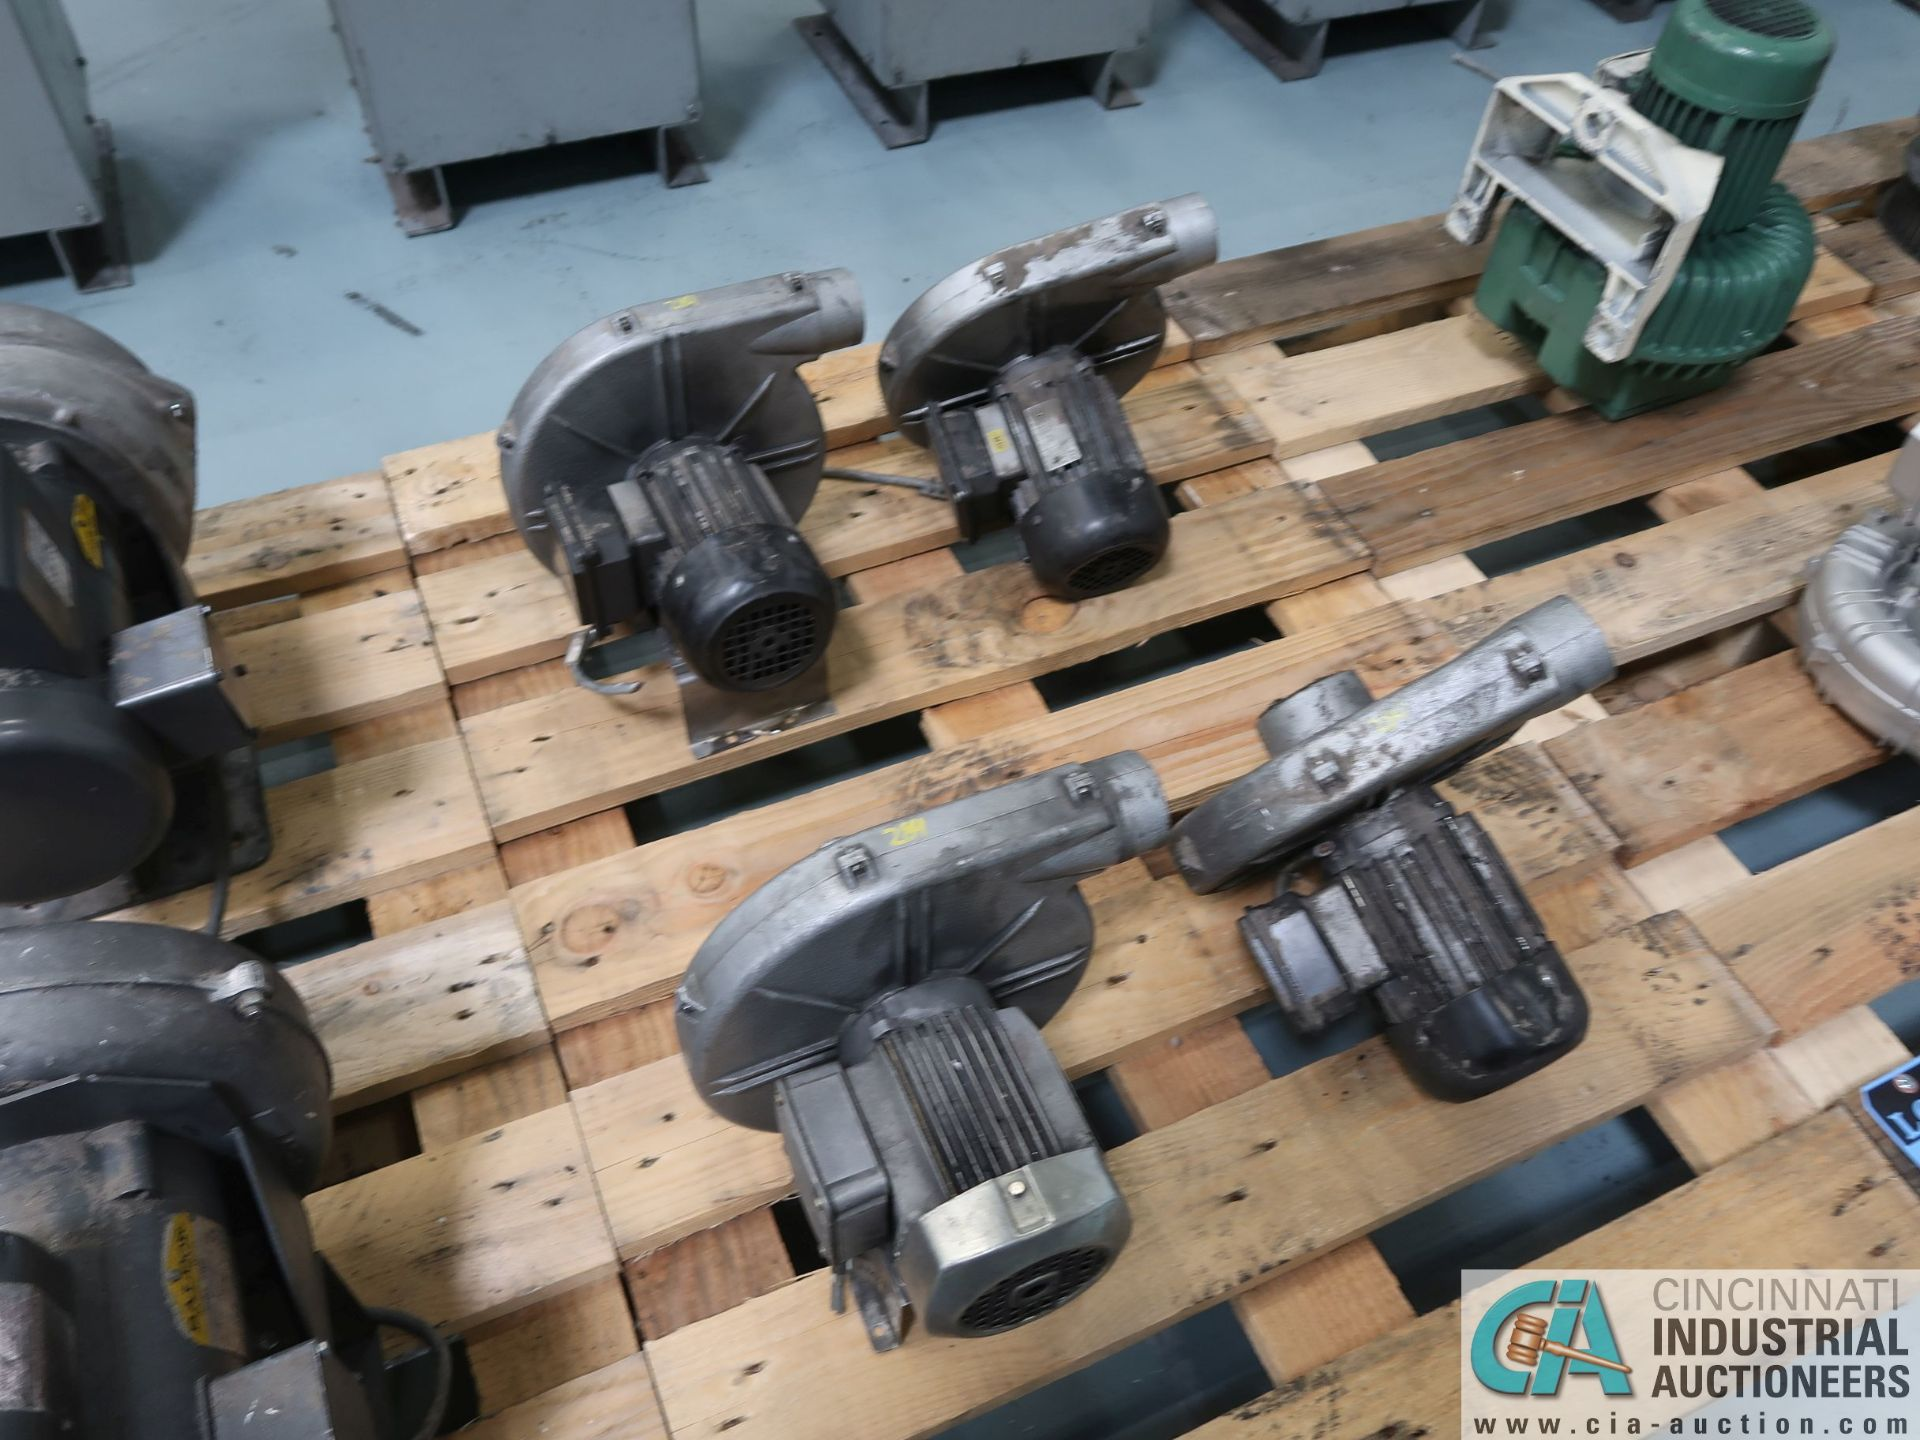 Lot 284 - 0.25 KW BLOWER MOTORS *$25.00 RIGGING FEE DUE TO INDUSTRIAL SERVICES AND SALES*